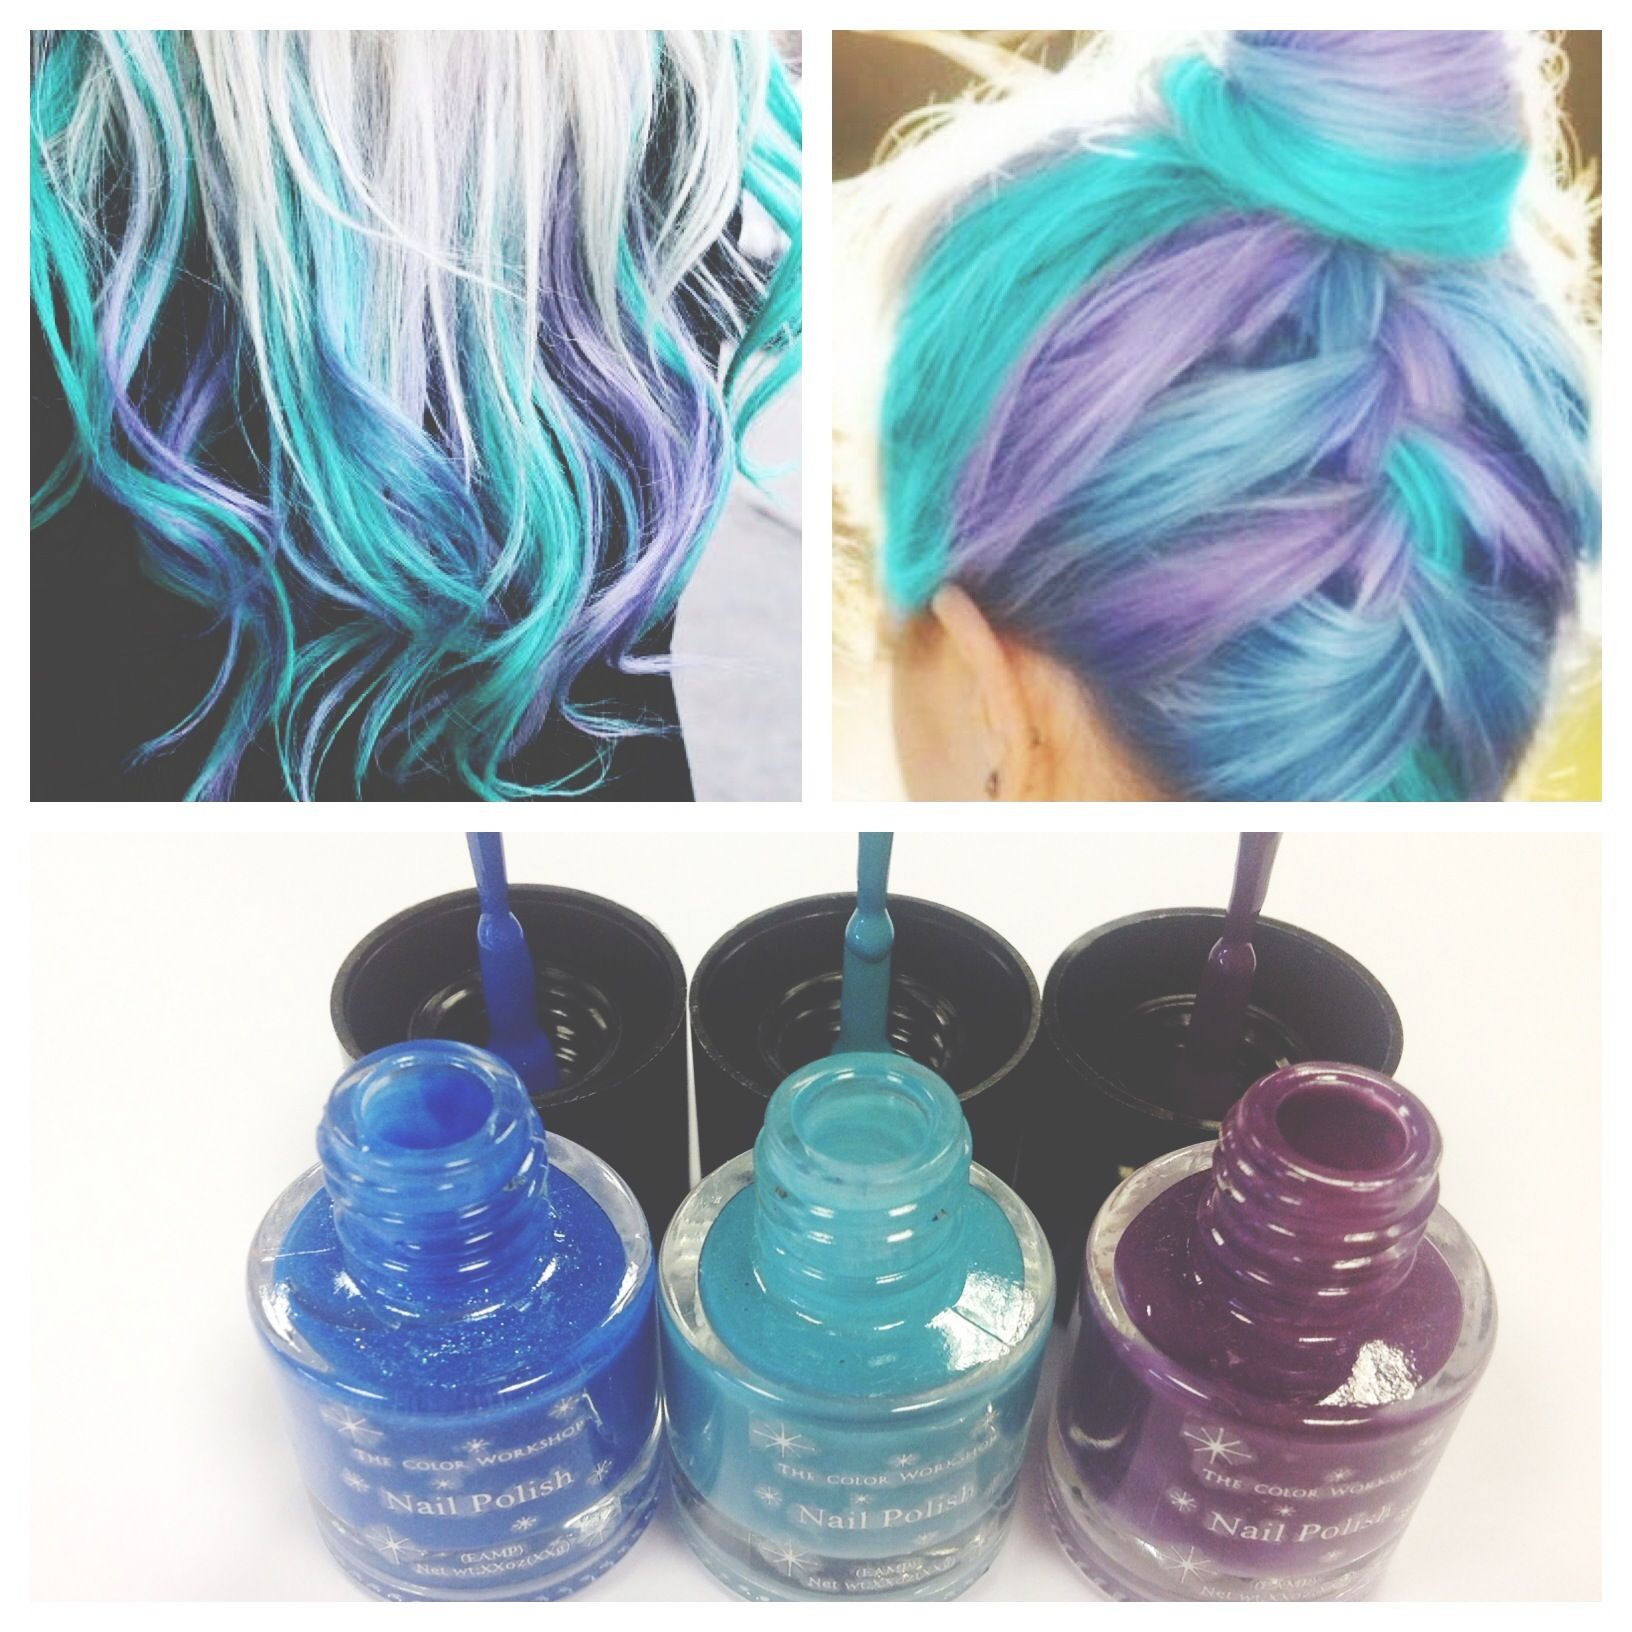 We love this \'mermaid\' hair trend! #nails #ombre #makeup #colour ...